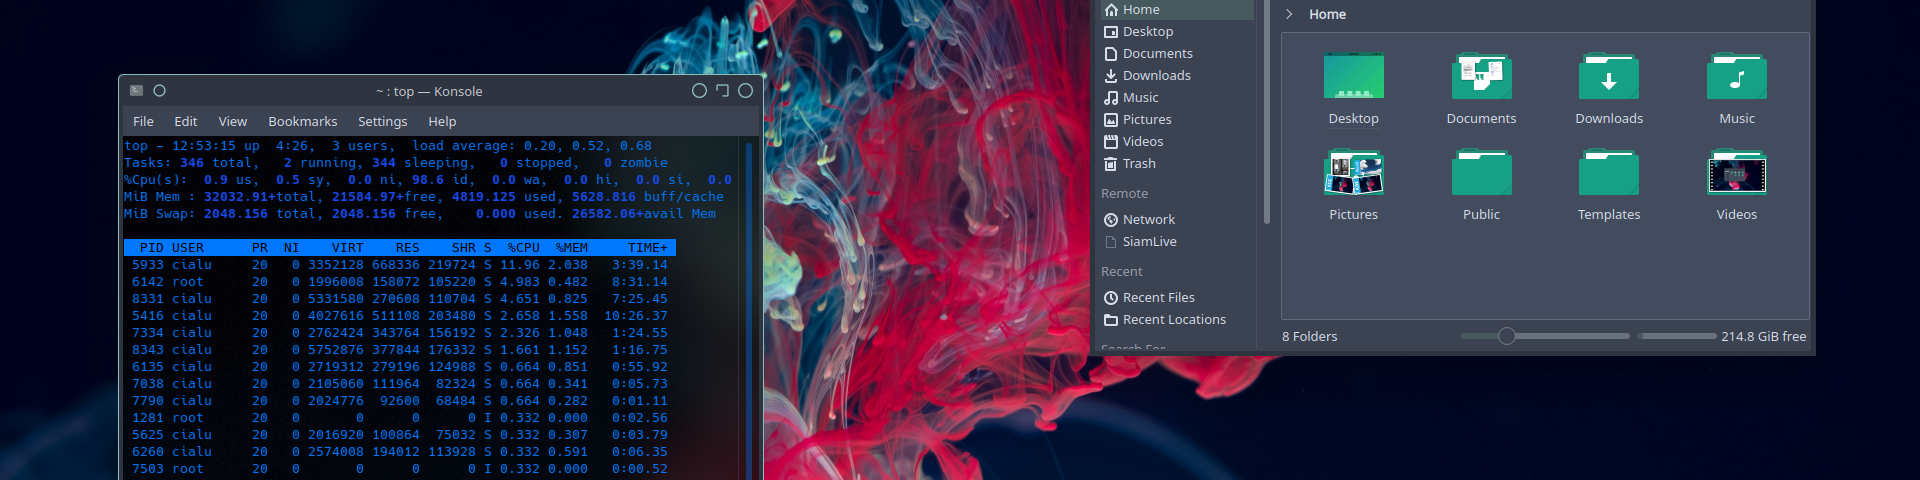 Neon themed KDE desktop with Nord color palette